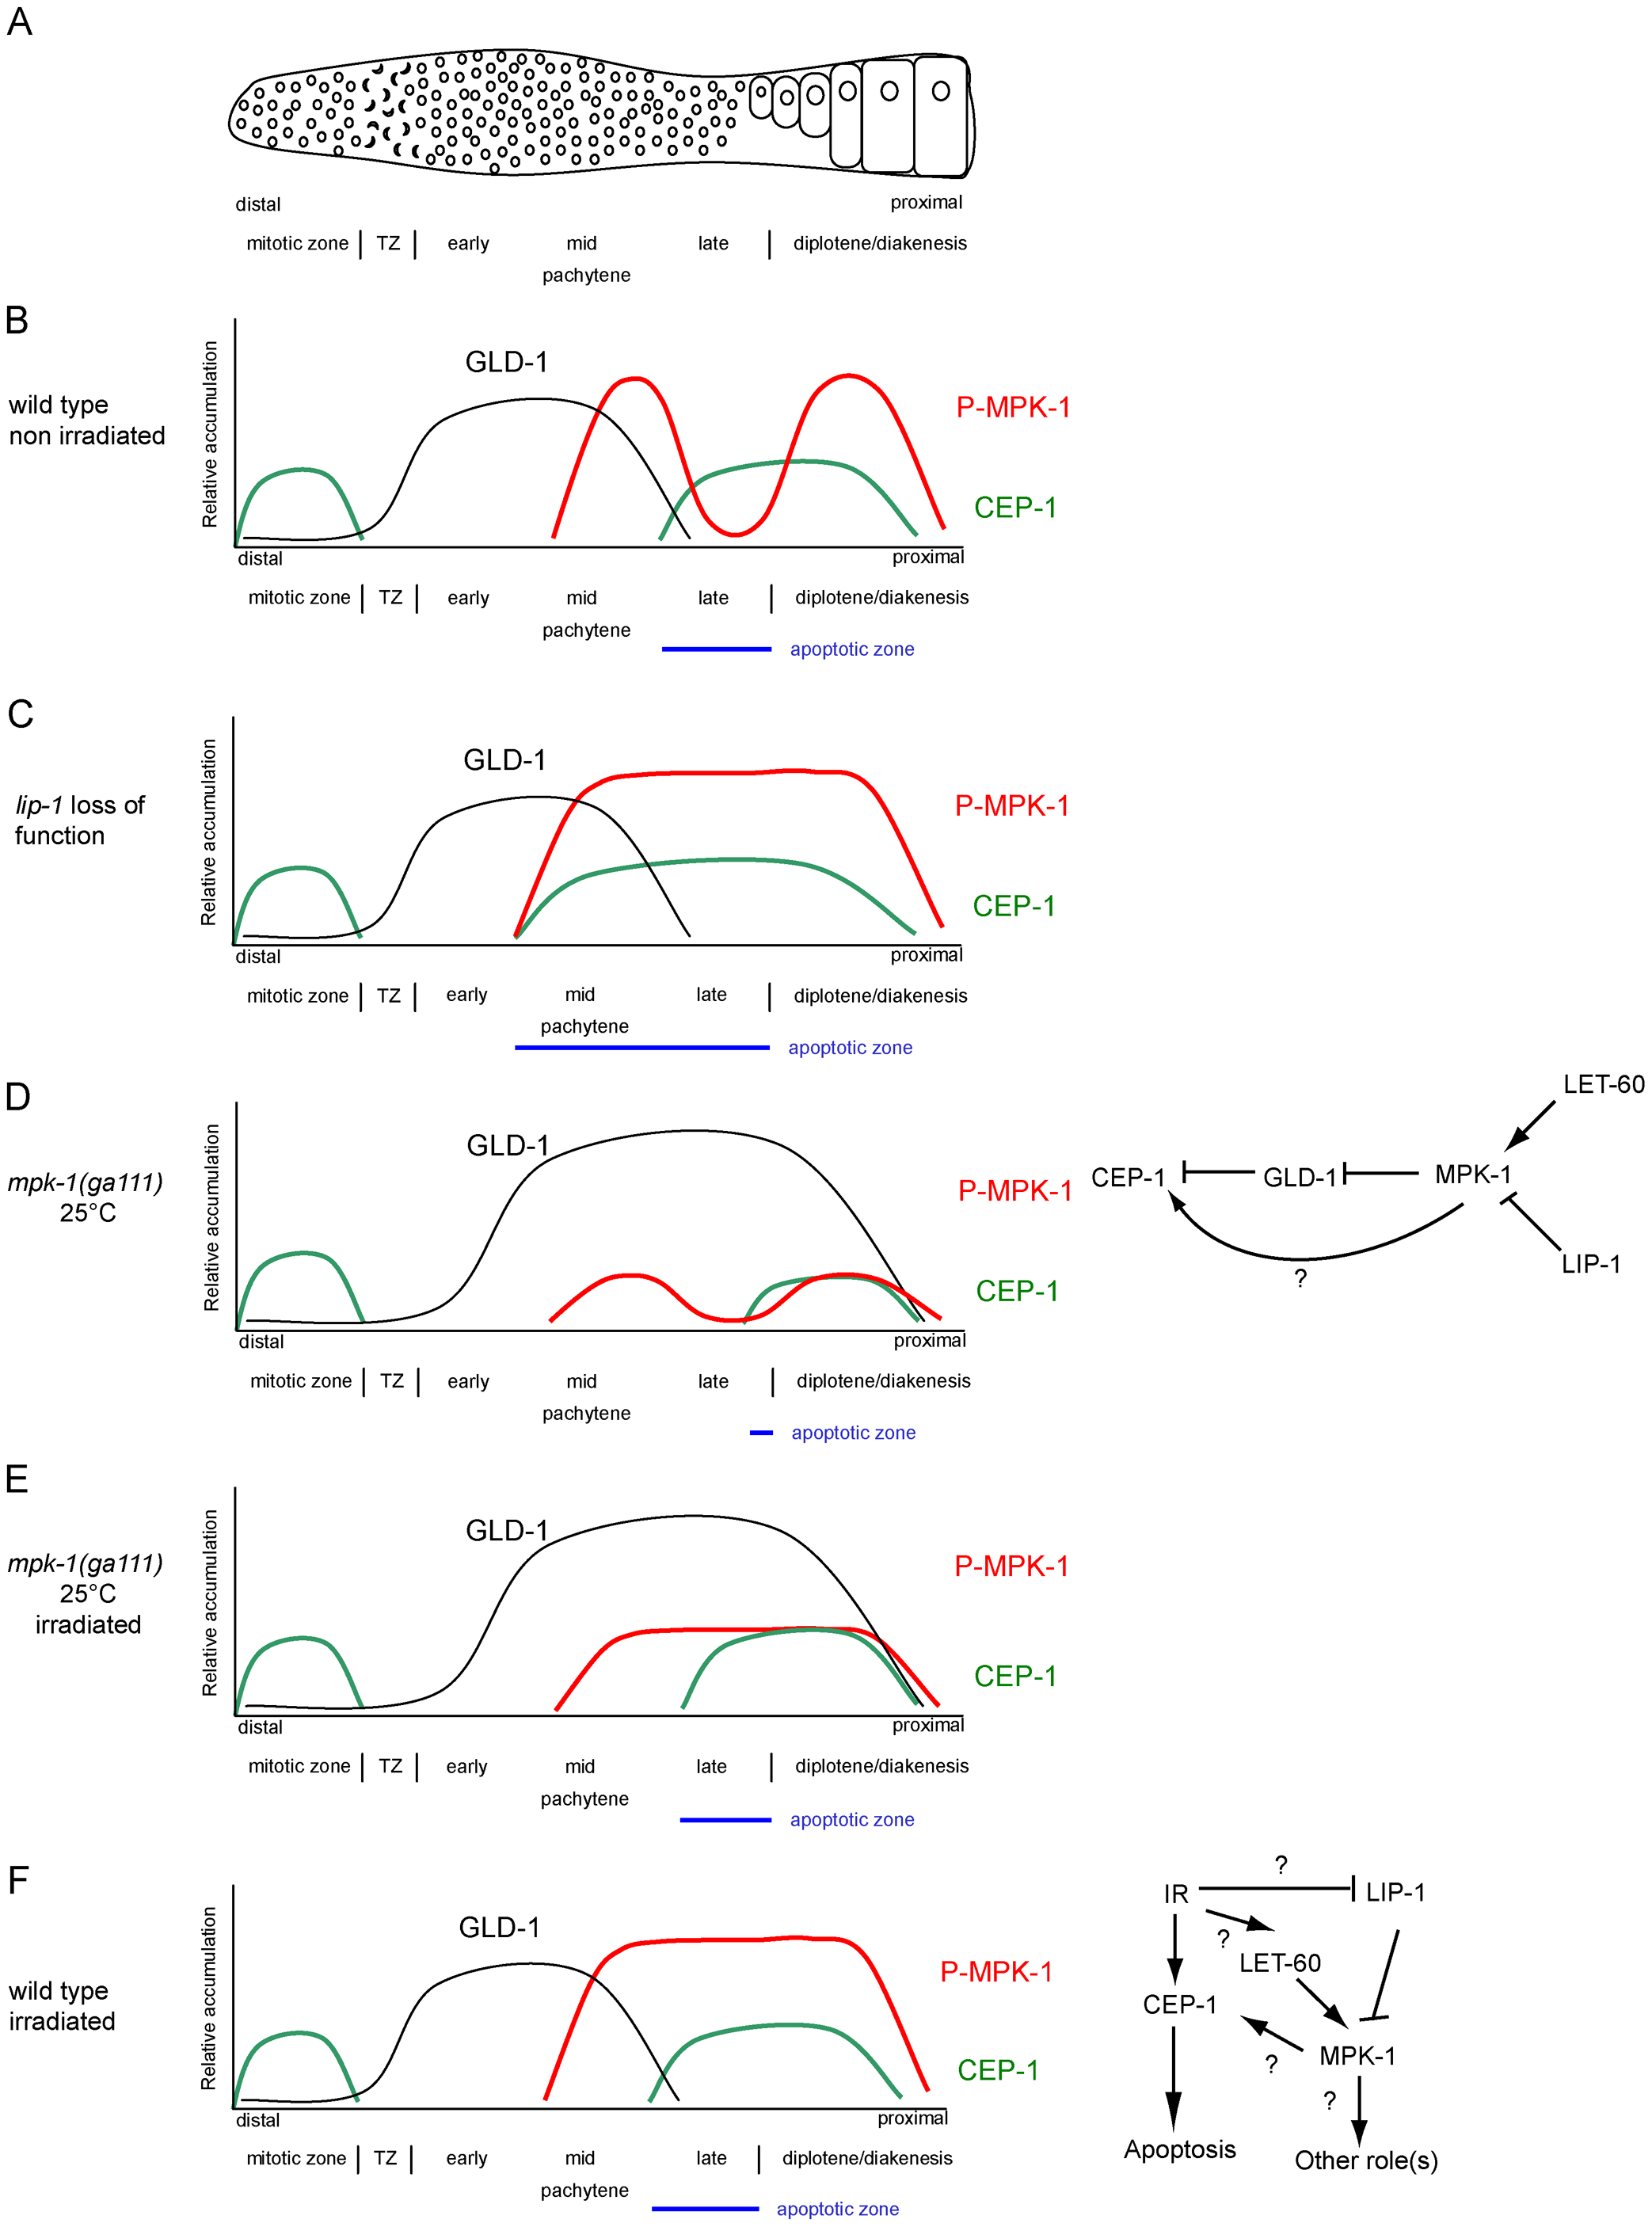 CEP-1 regulation by MPK-1 signaling.